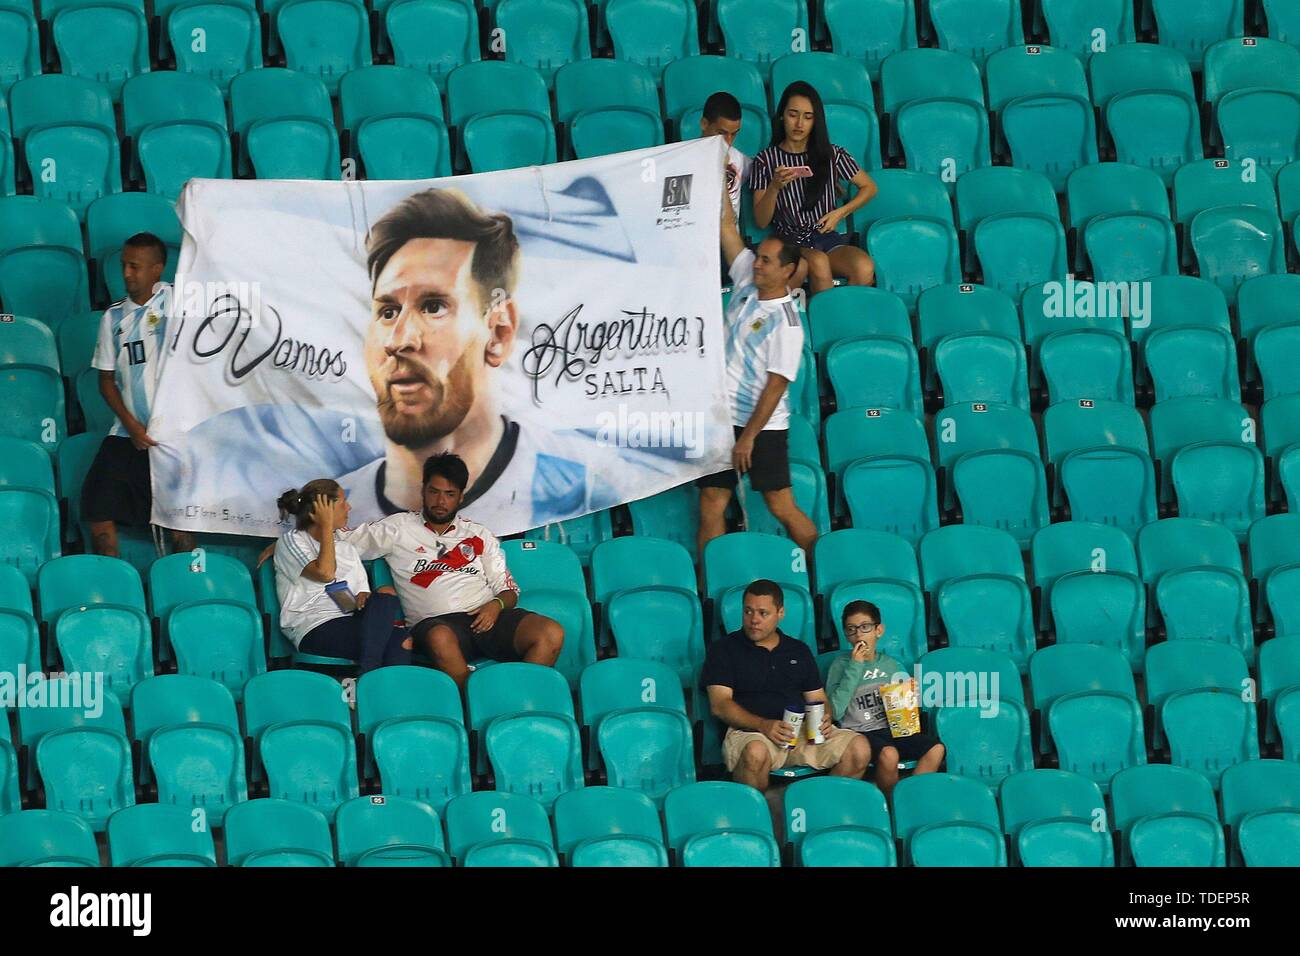 Salvador, Brazil. 15th June, 2019. Argentinian supporters before the Copa America 2019 Group B soccer match between Argentina and Colombia, at Arena Fonte Nova Stadium in Salvador, Brazil, 15 June 2019. Credit: Joedson Alves/EFE/Alamy Live News Stock Photo